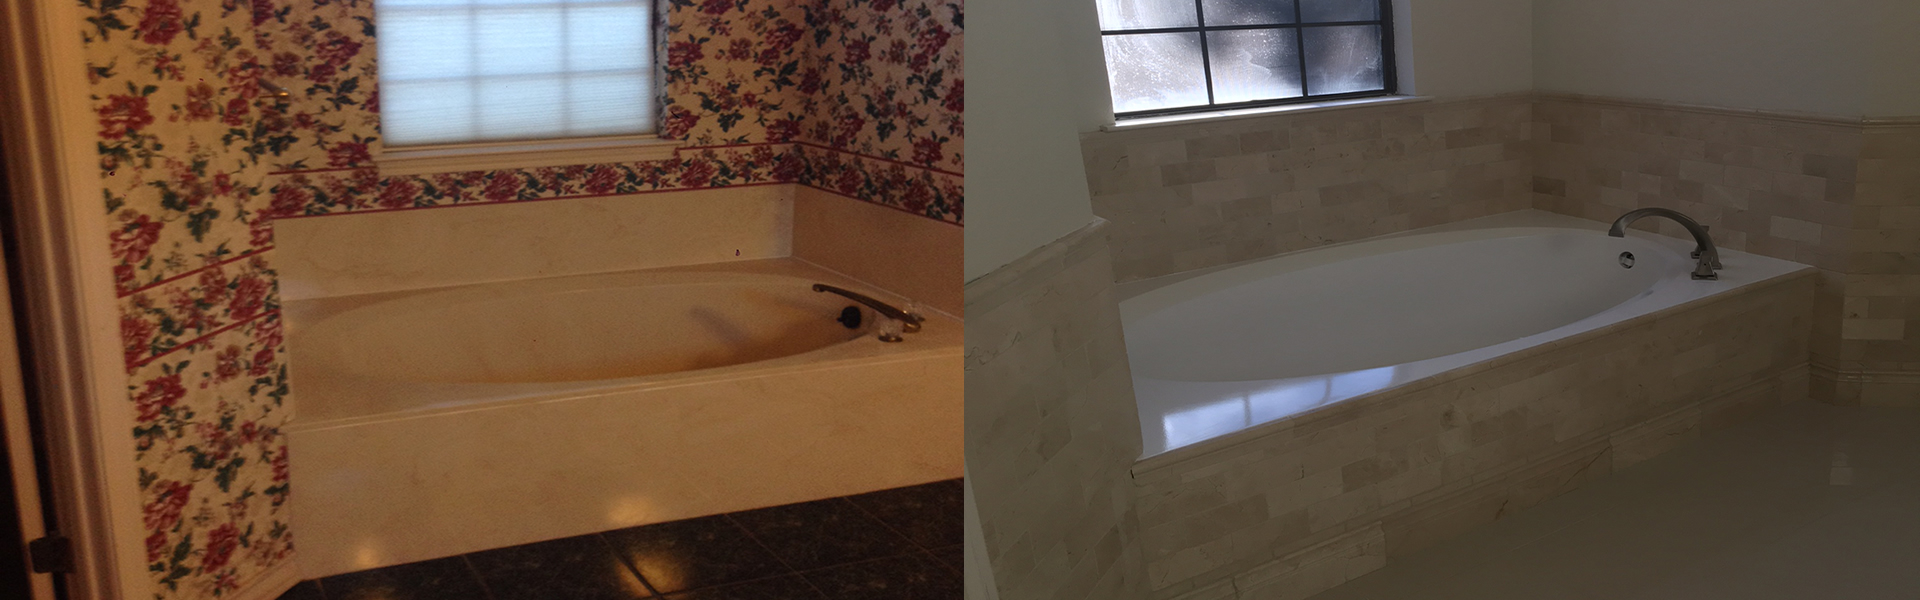 HOUSTON BATHTUB REFINISHING, CULTURED AND LAMINATE FORMICA, AFFORDABLE  CABINETS AND COUNTERTOPS RESURFACING, Cabinets Refacing, Tile, ...